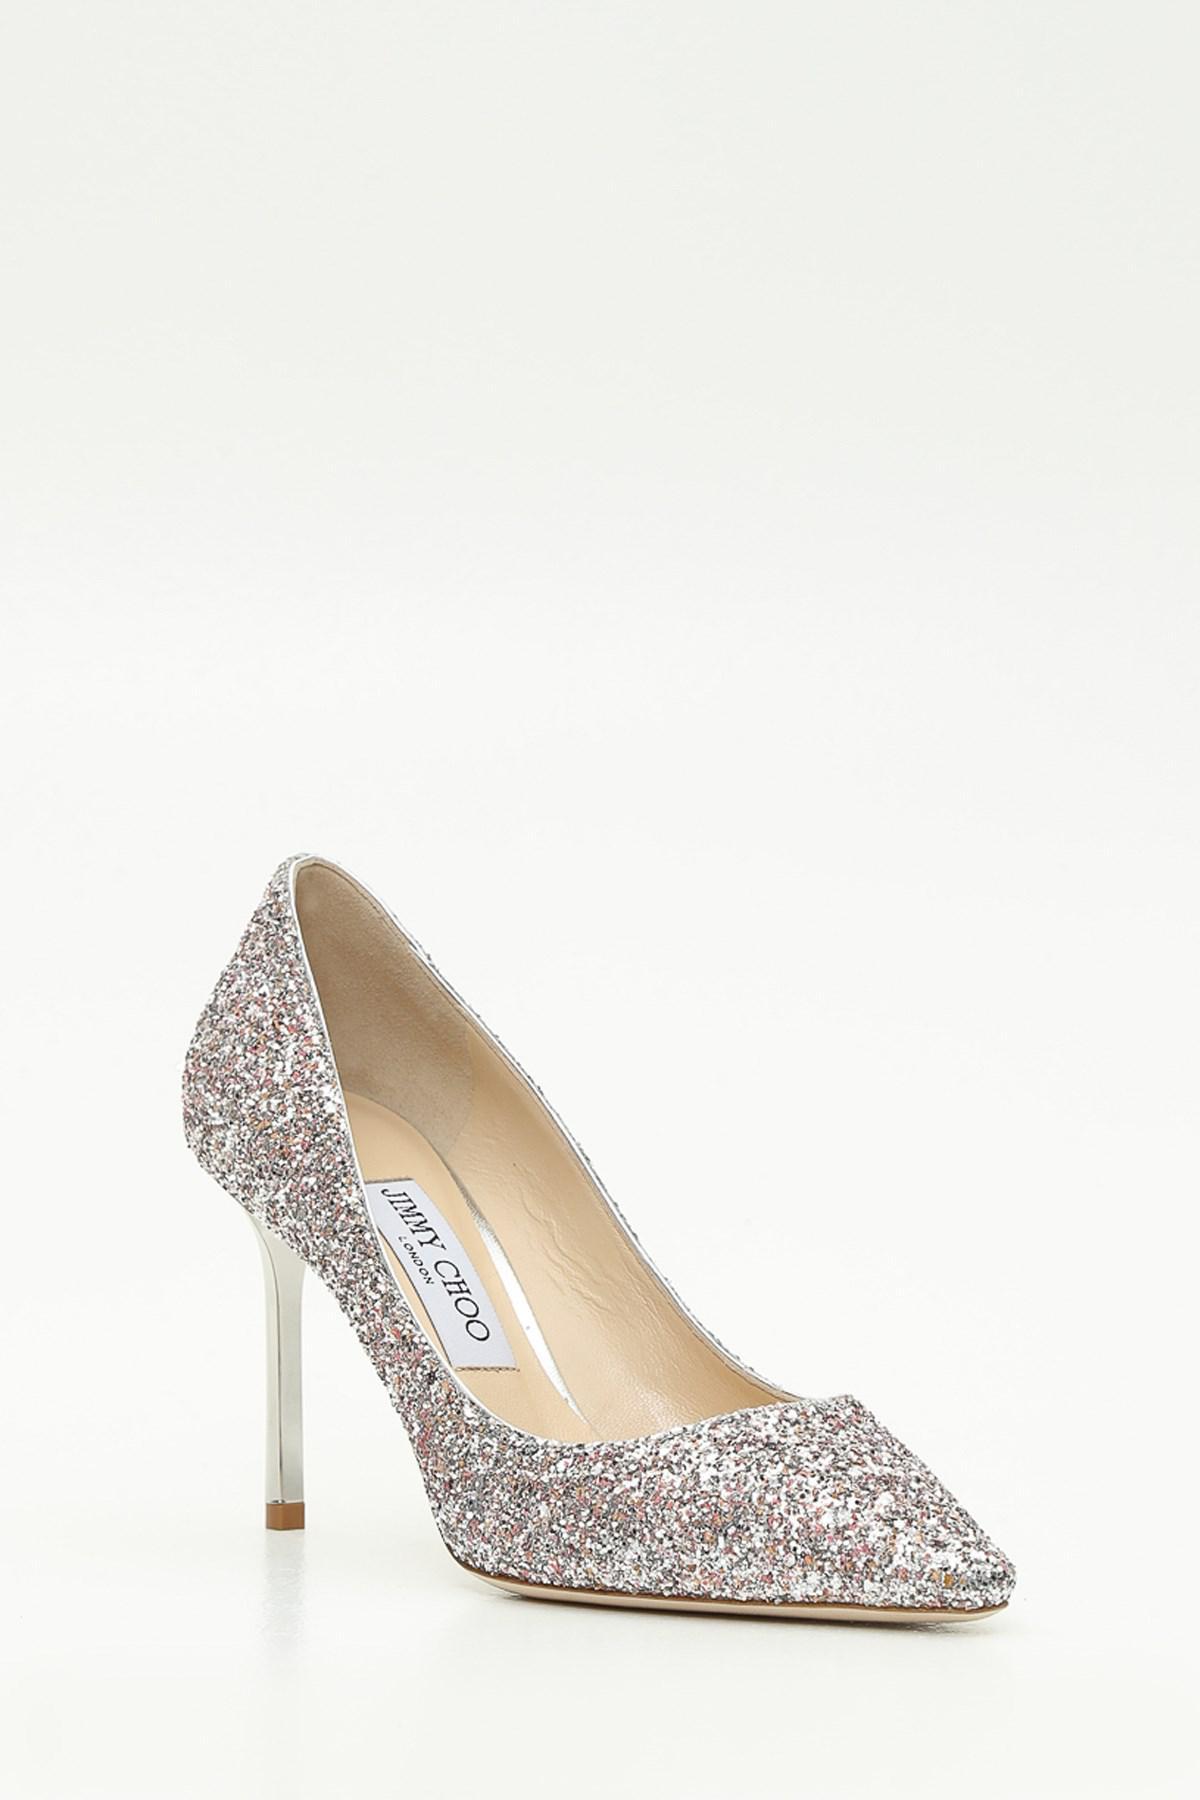 6cd2263f8bc1 Jimmy Choo Viola Mix Speckled Glitter Pointy Toe - Lyst